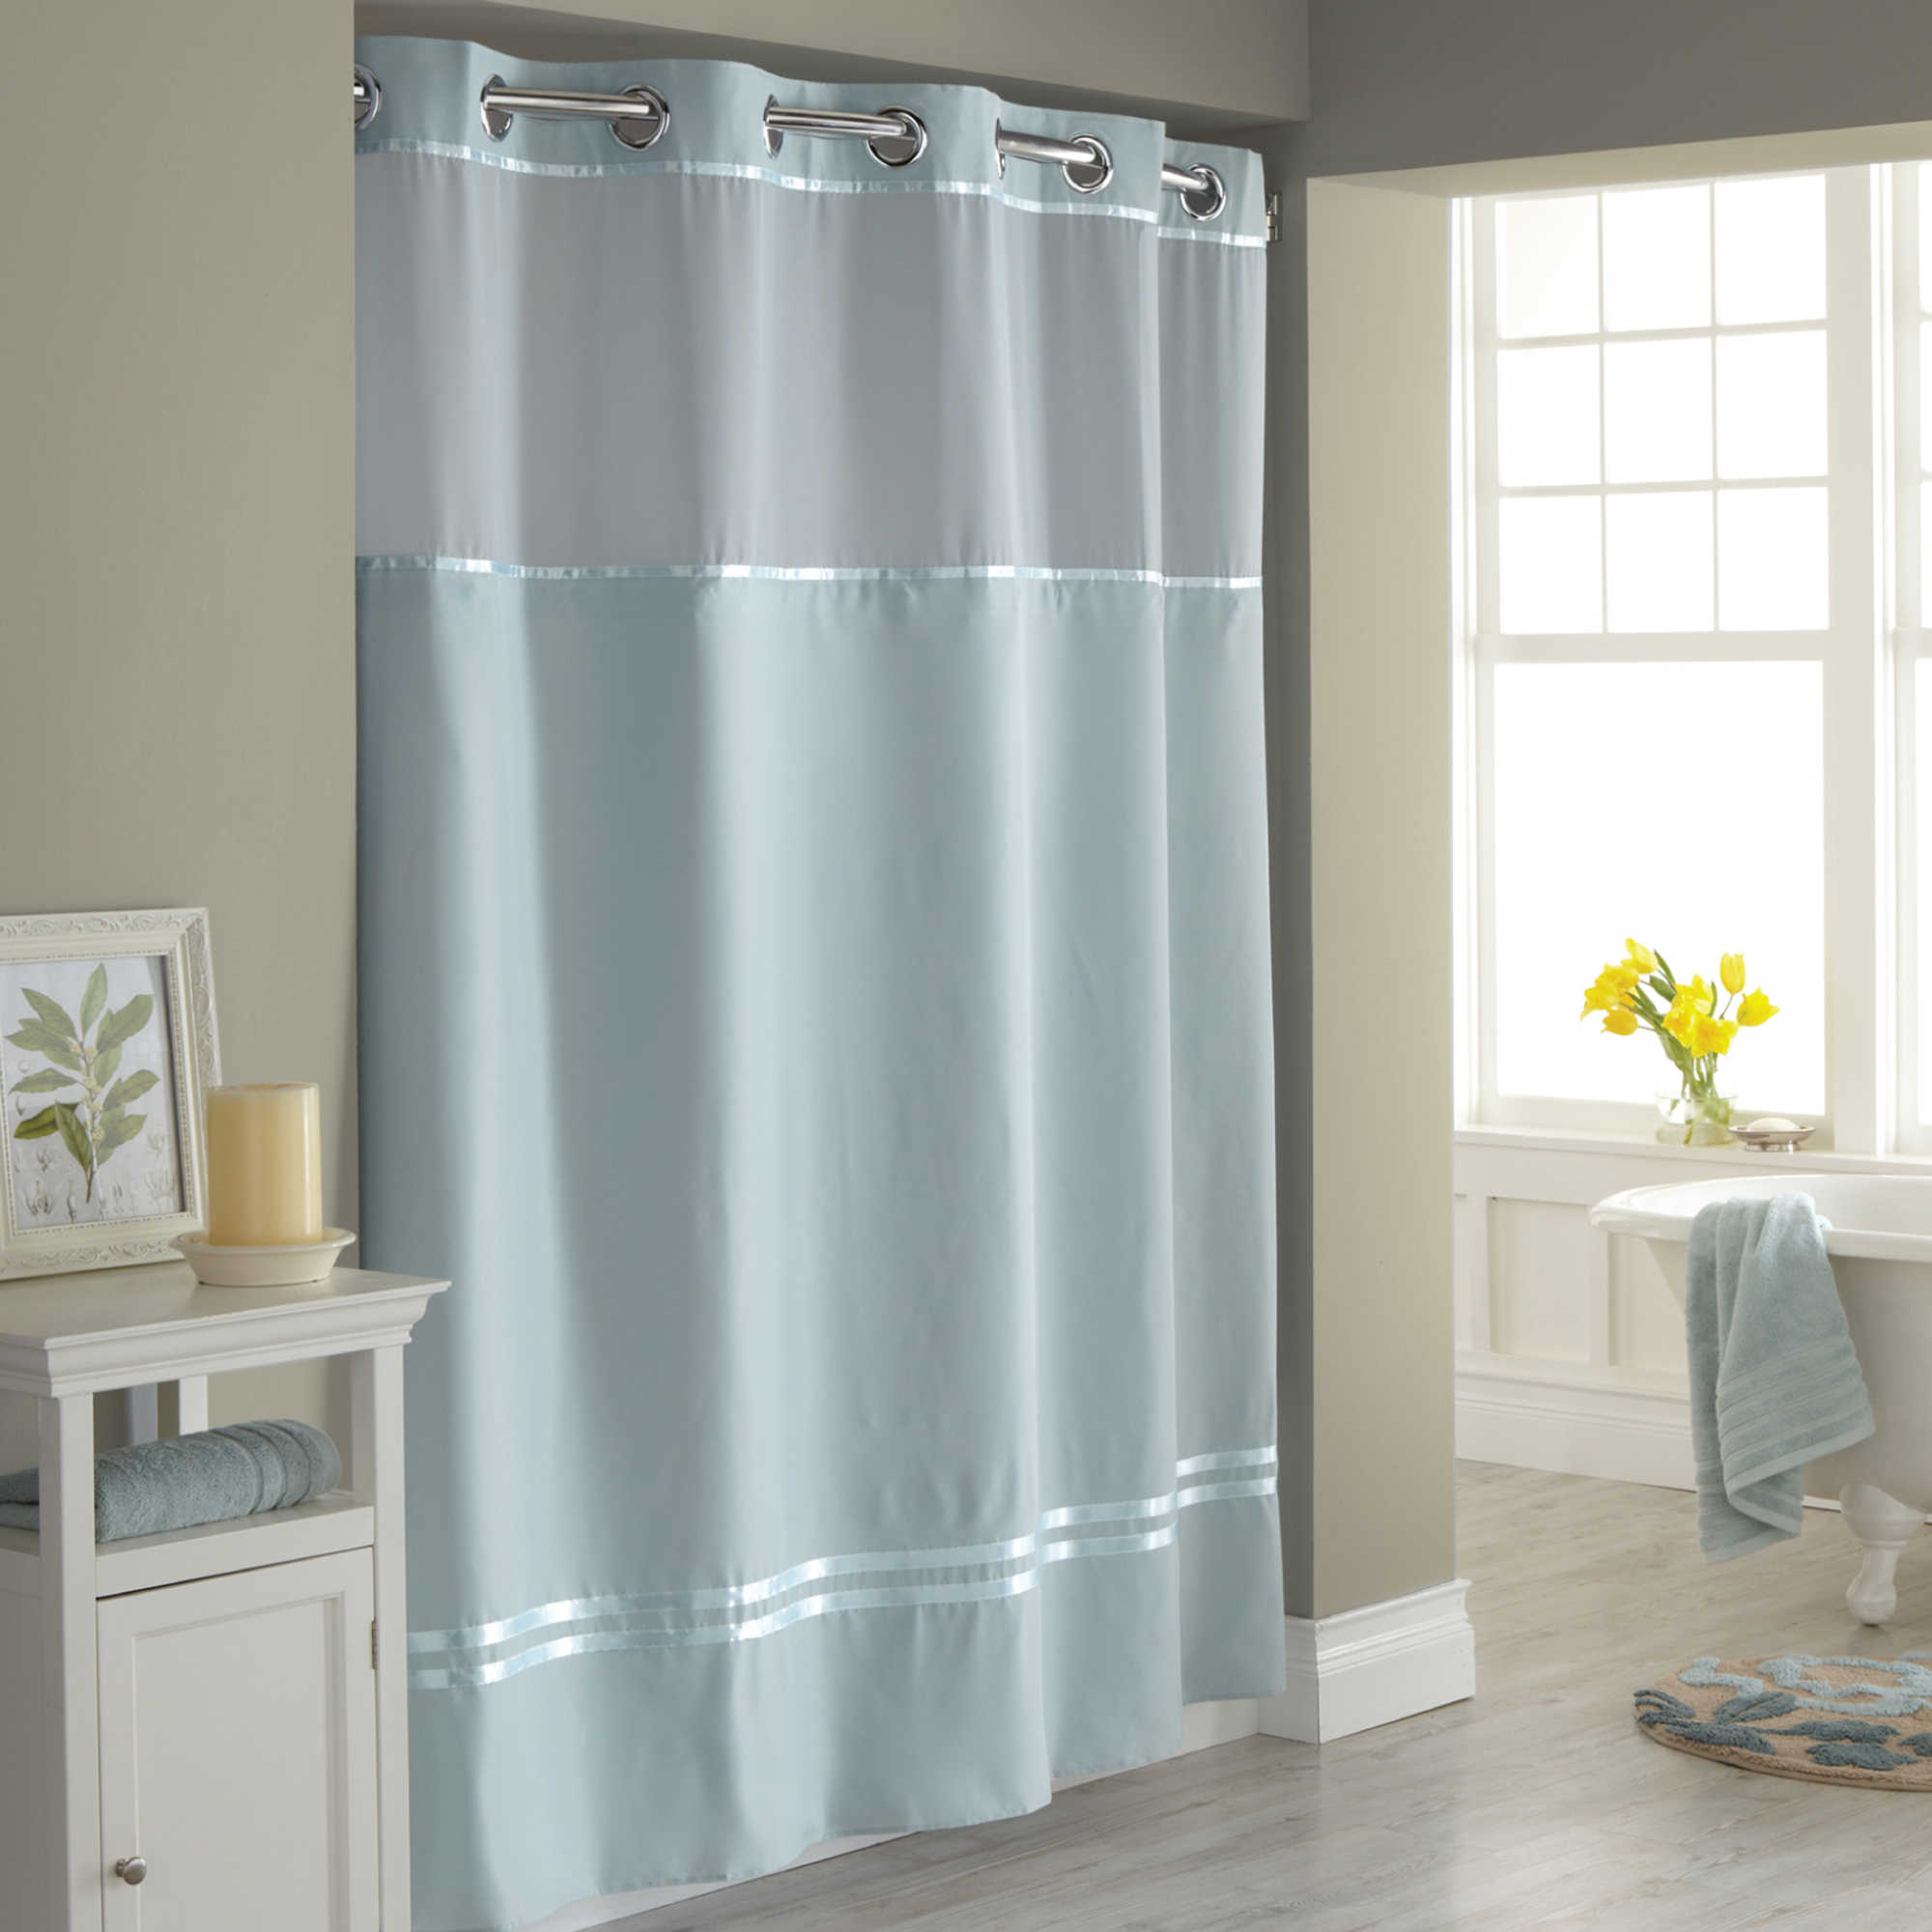 Bathroom Stunning Hookless Shower Curtain With Snap Liner For with regard to proportions 2000 X 2000